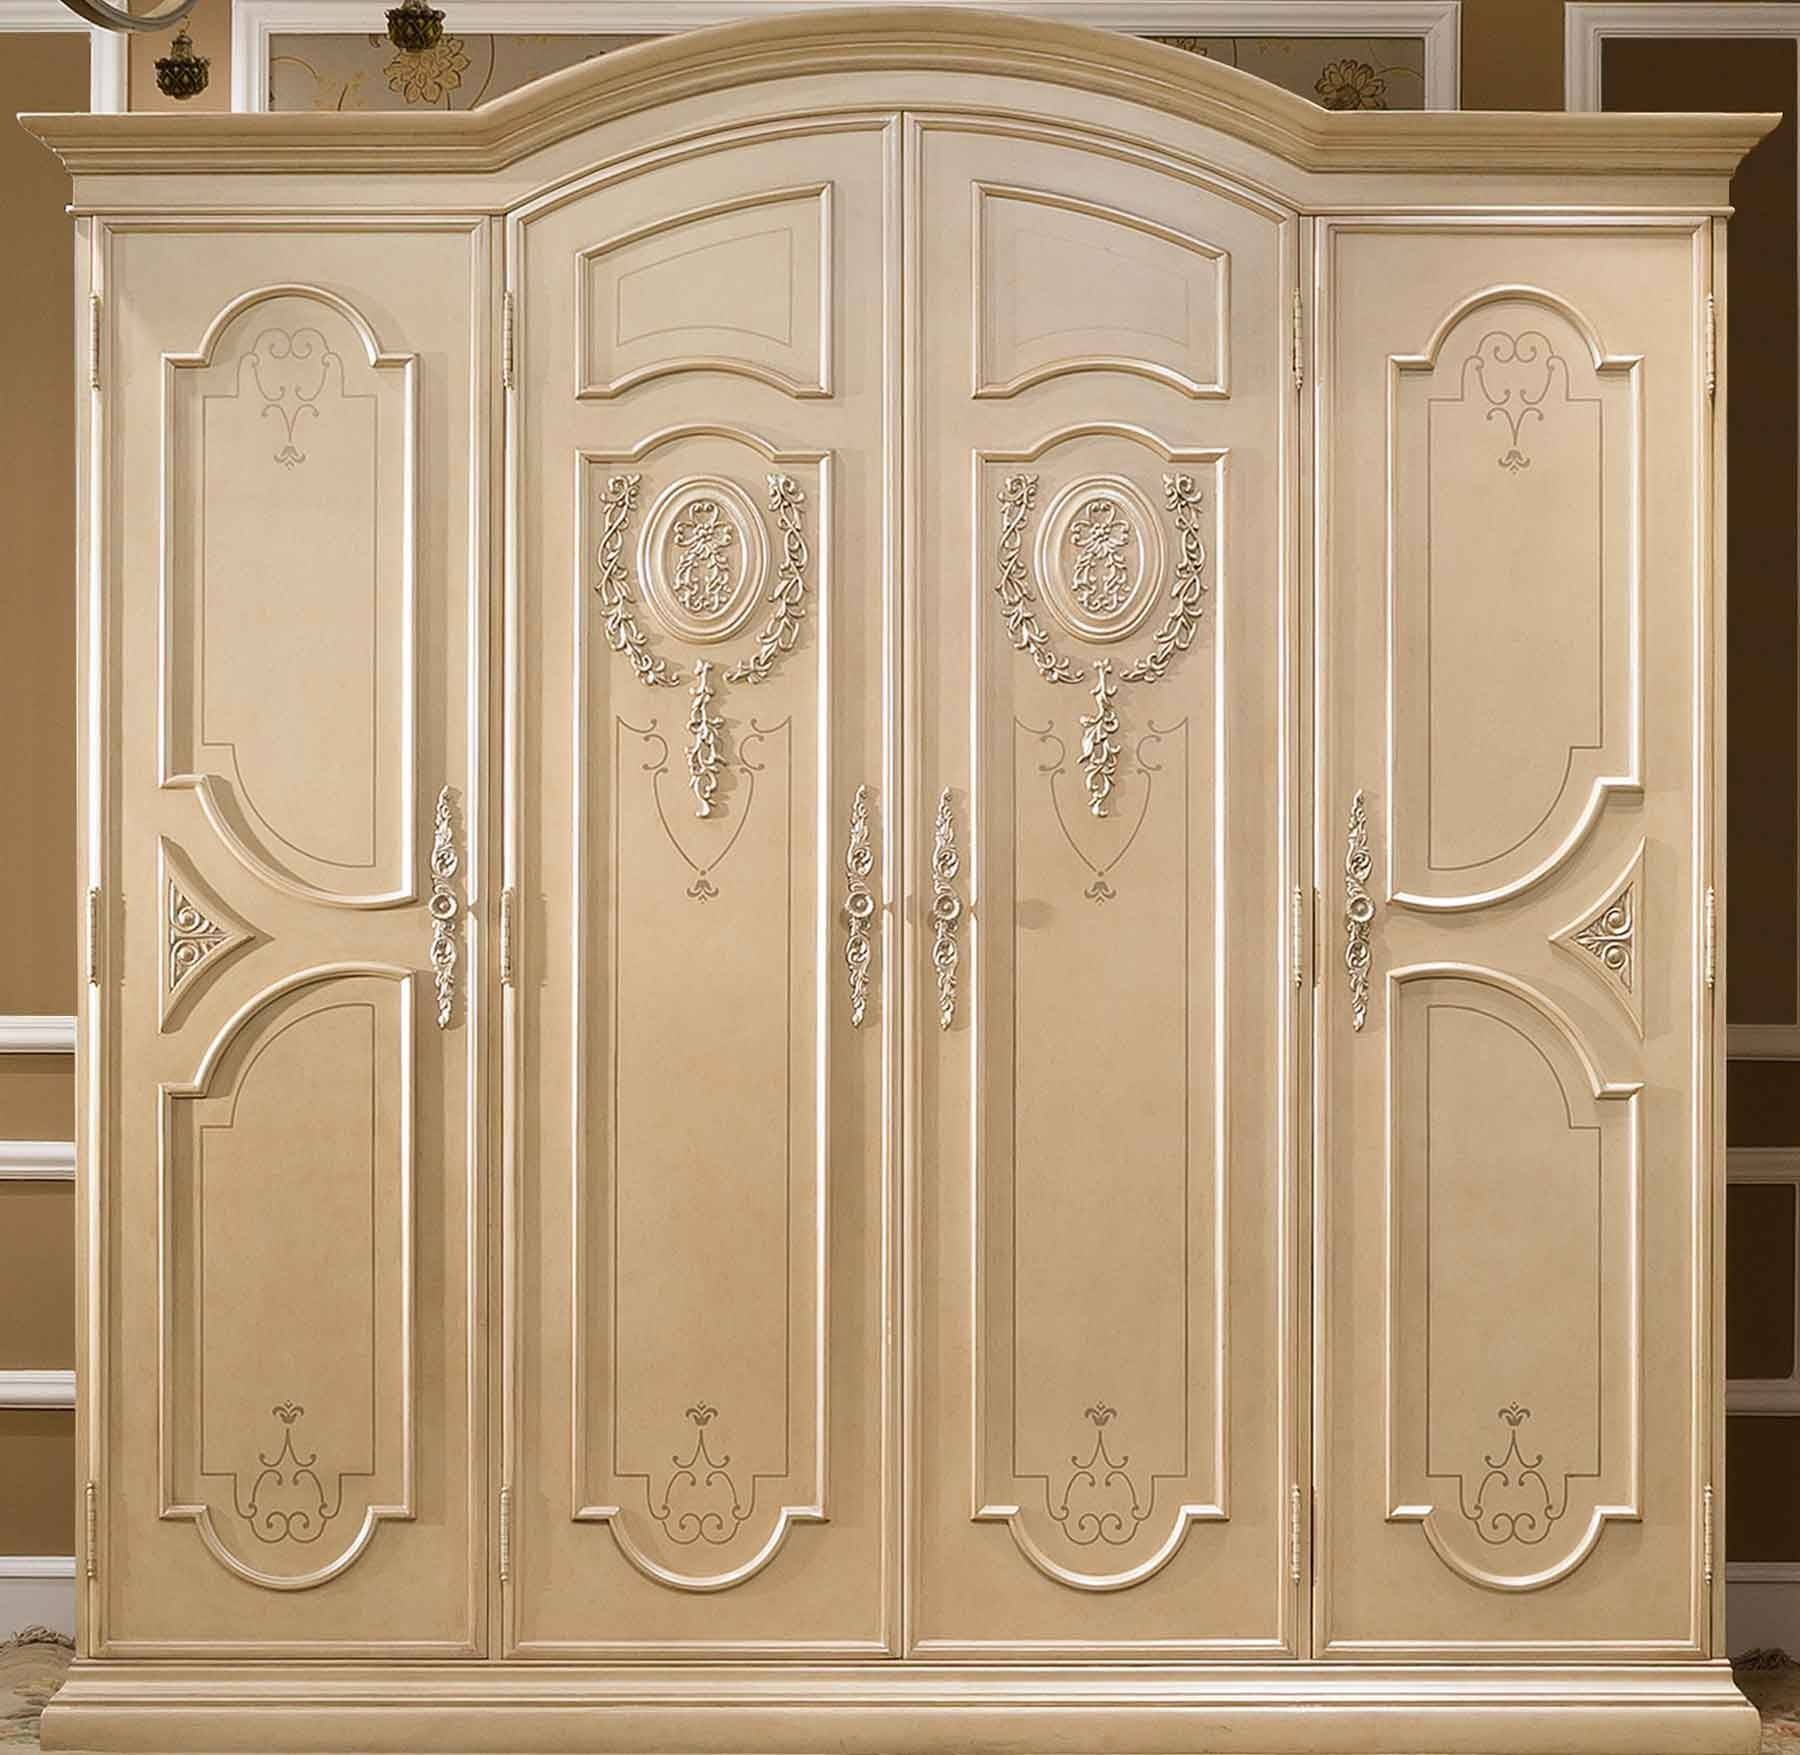 Bedroom Furniture : French Wardrobes Gentleman's Wardrobe pertaining to French Wardrobes For Sale (Image 7 of 15)